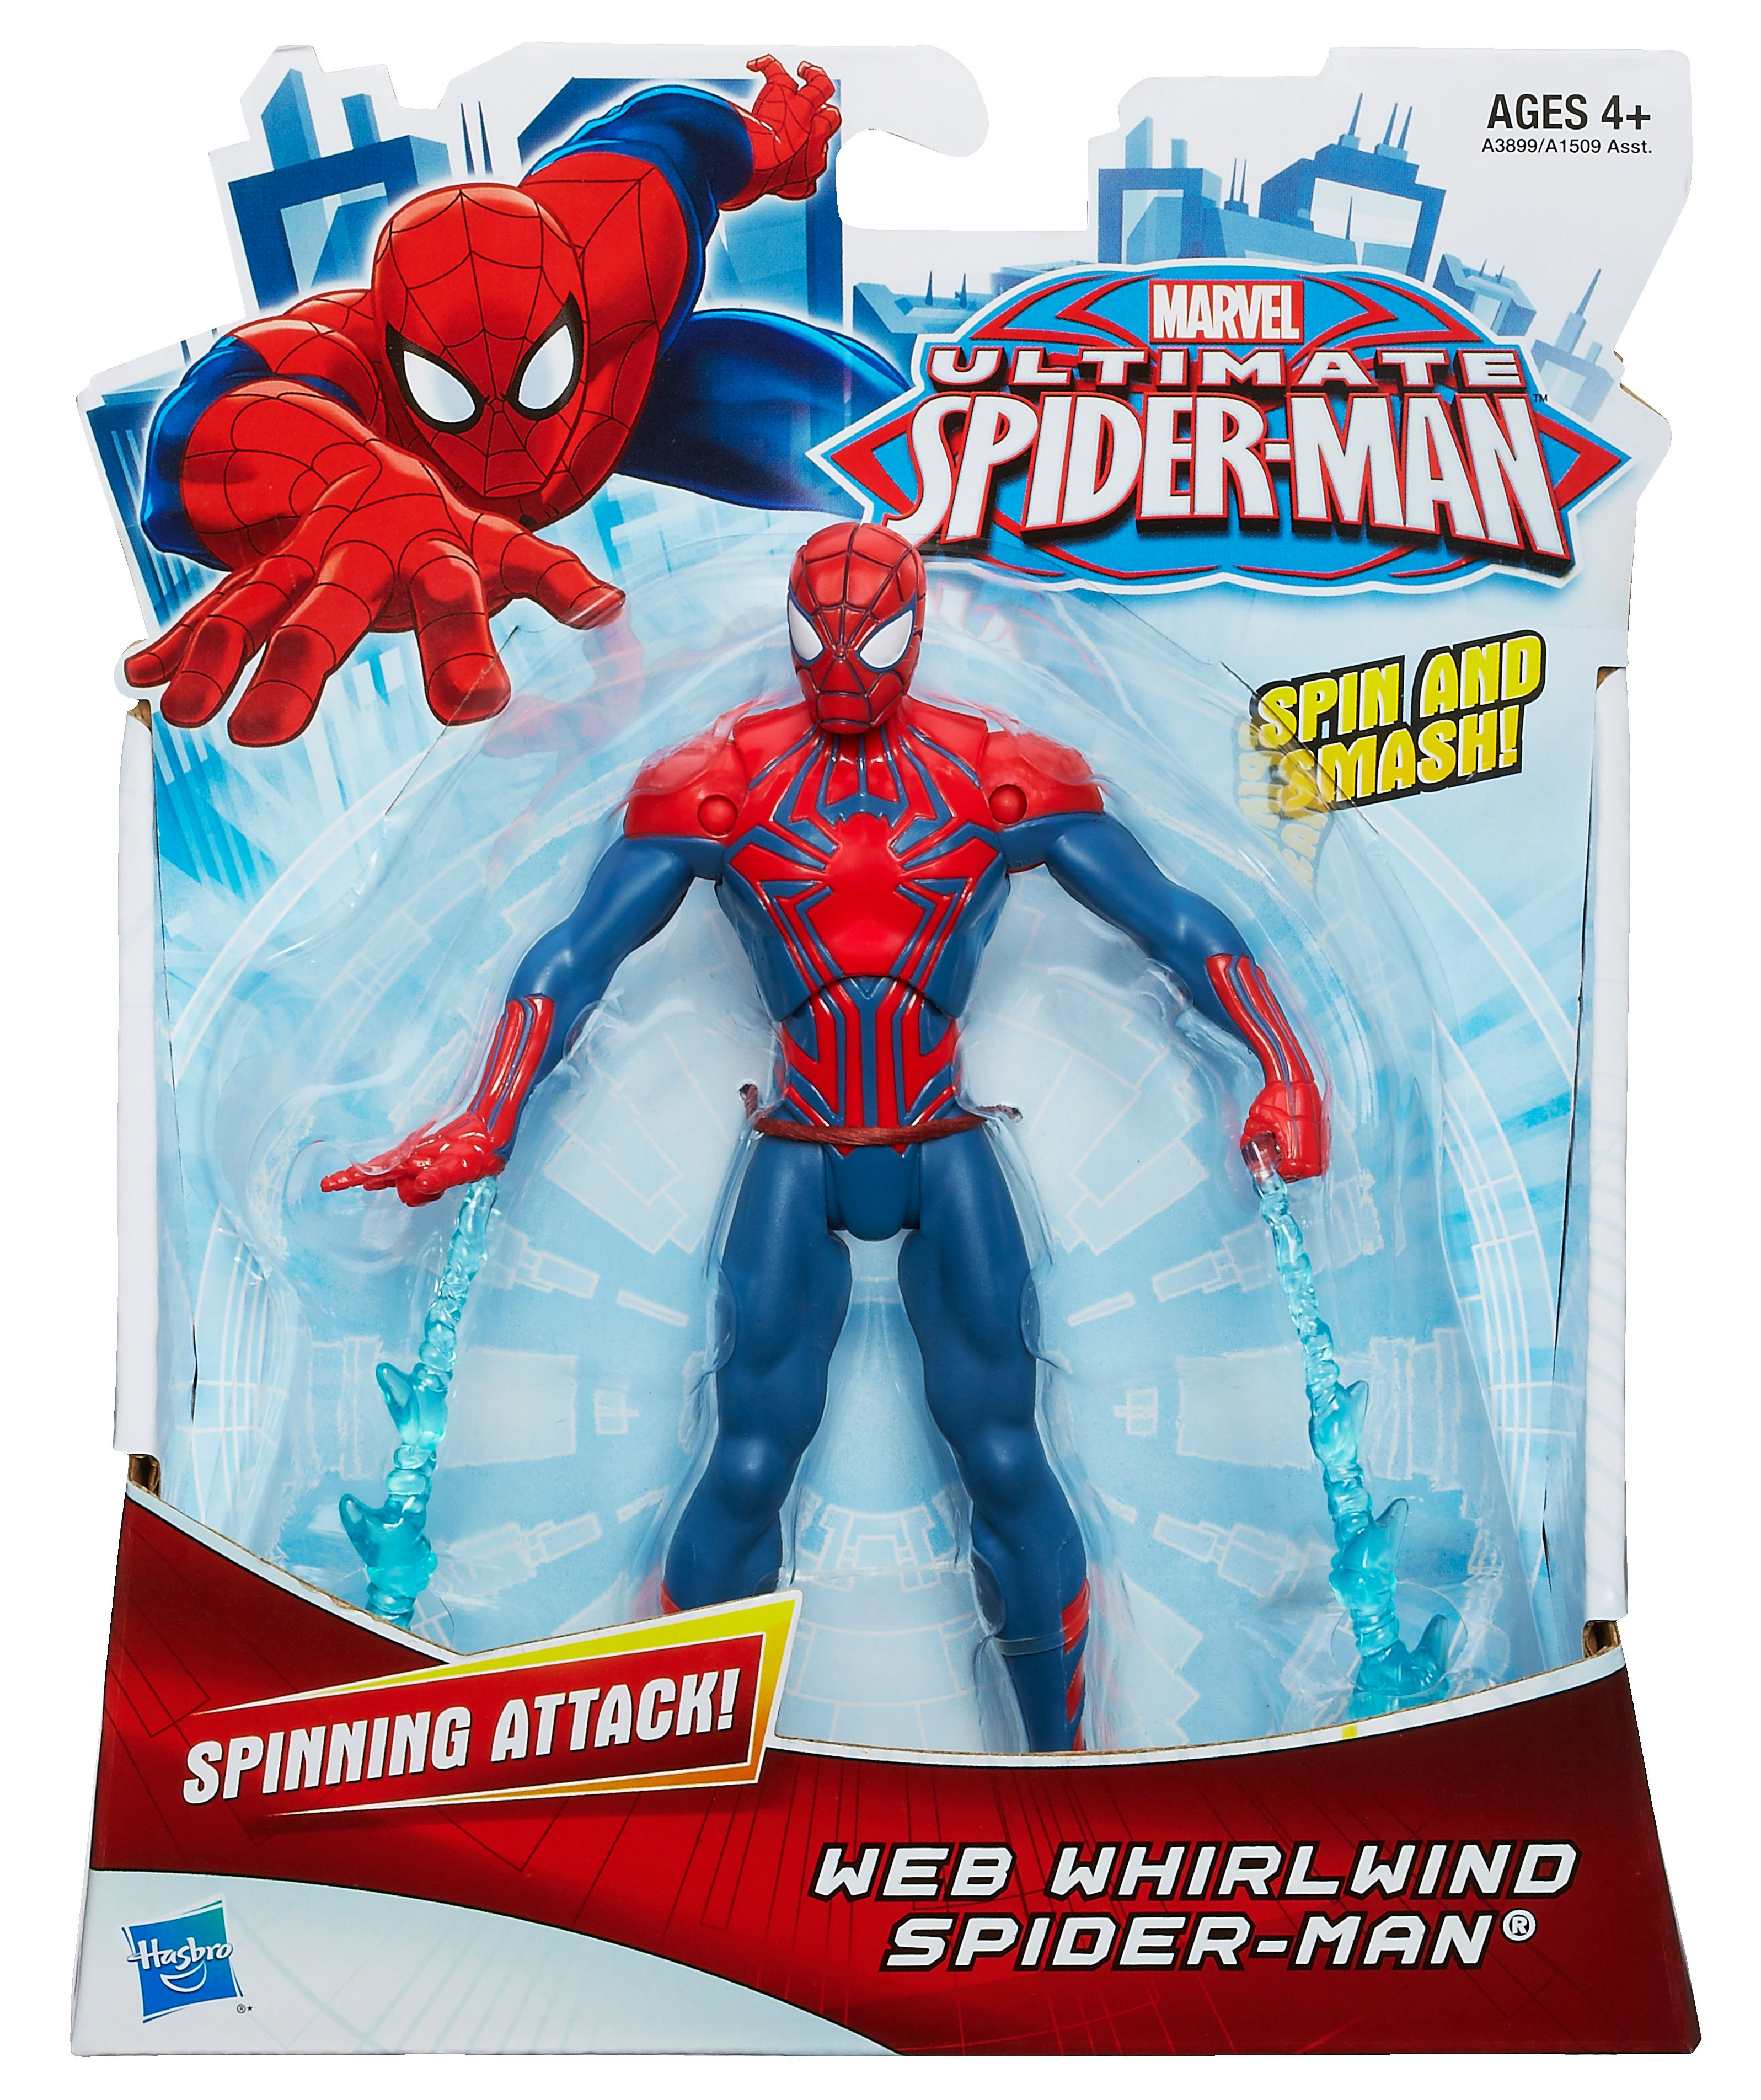 Web whirlwind Spiderman figure